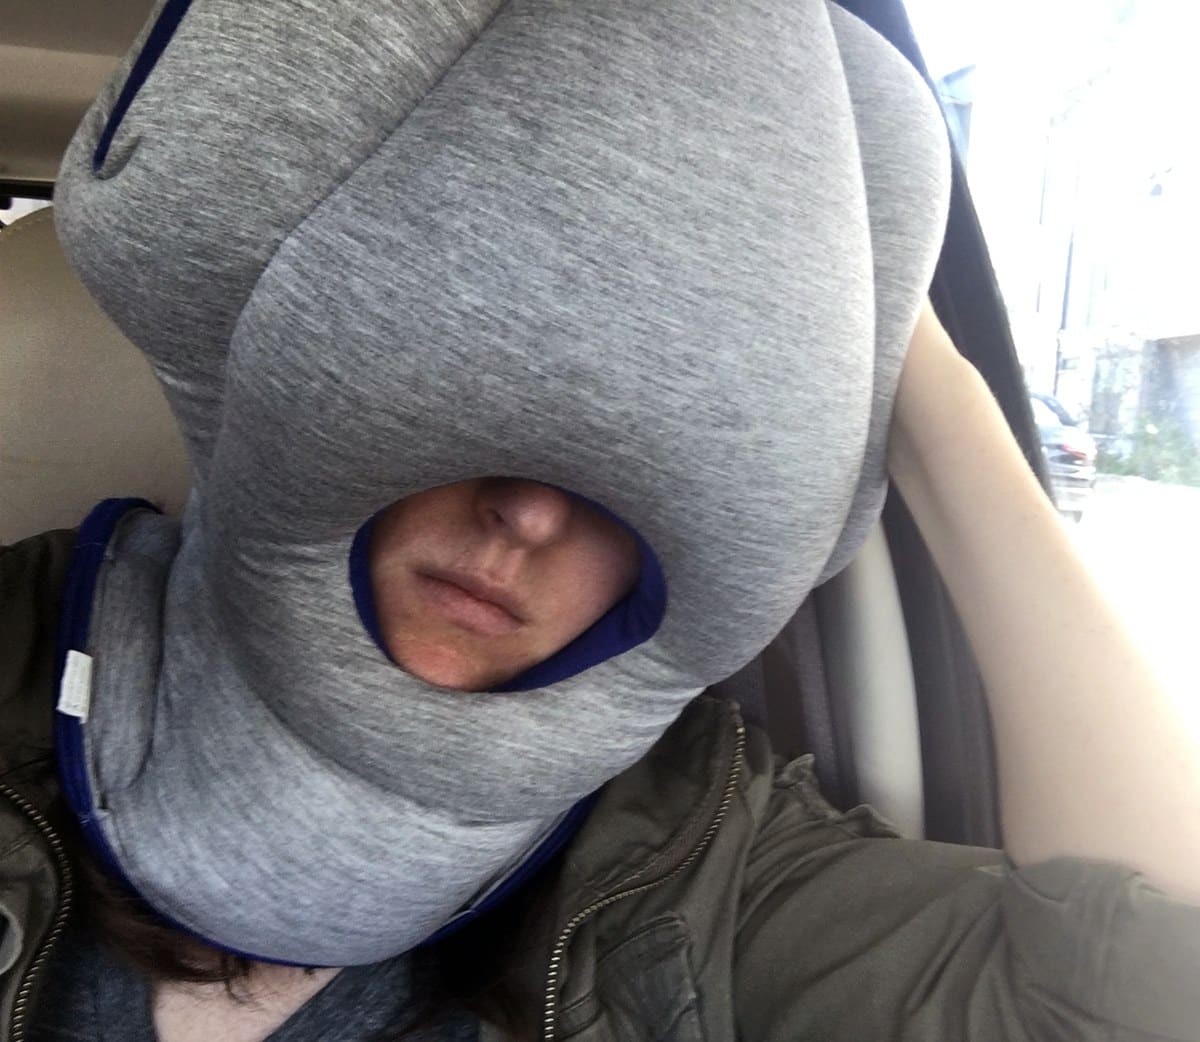 Ostrich Pillow Video. Ostrich Pillow Travel Pillow Review